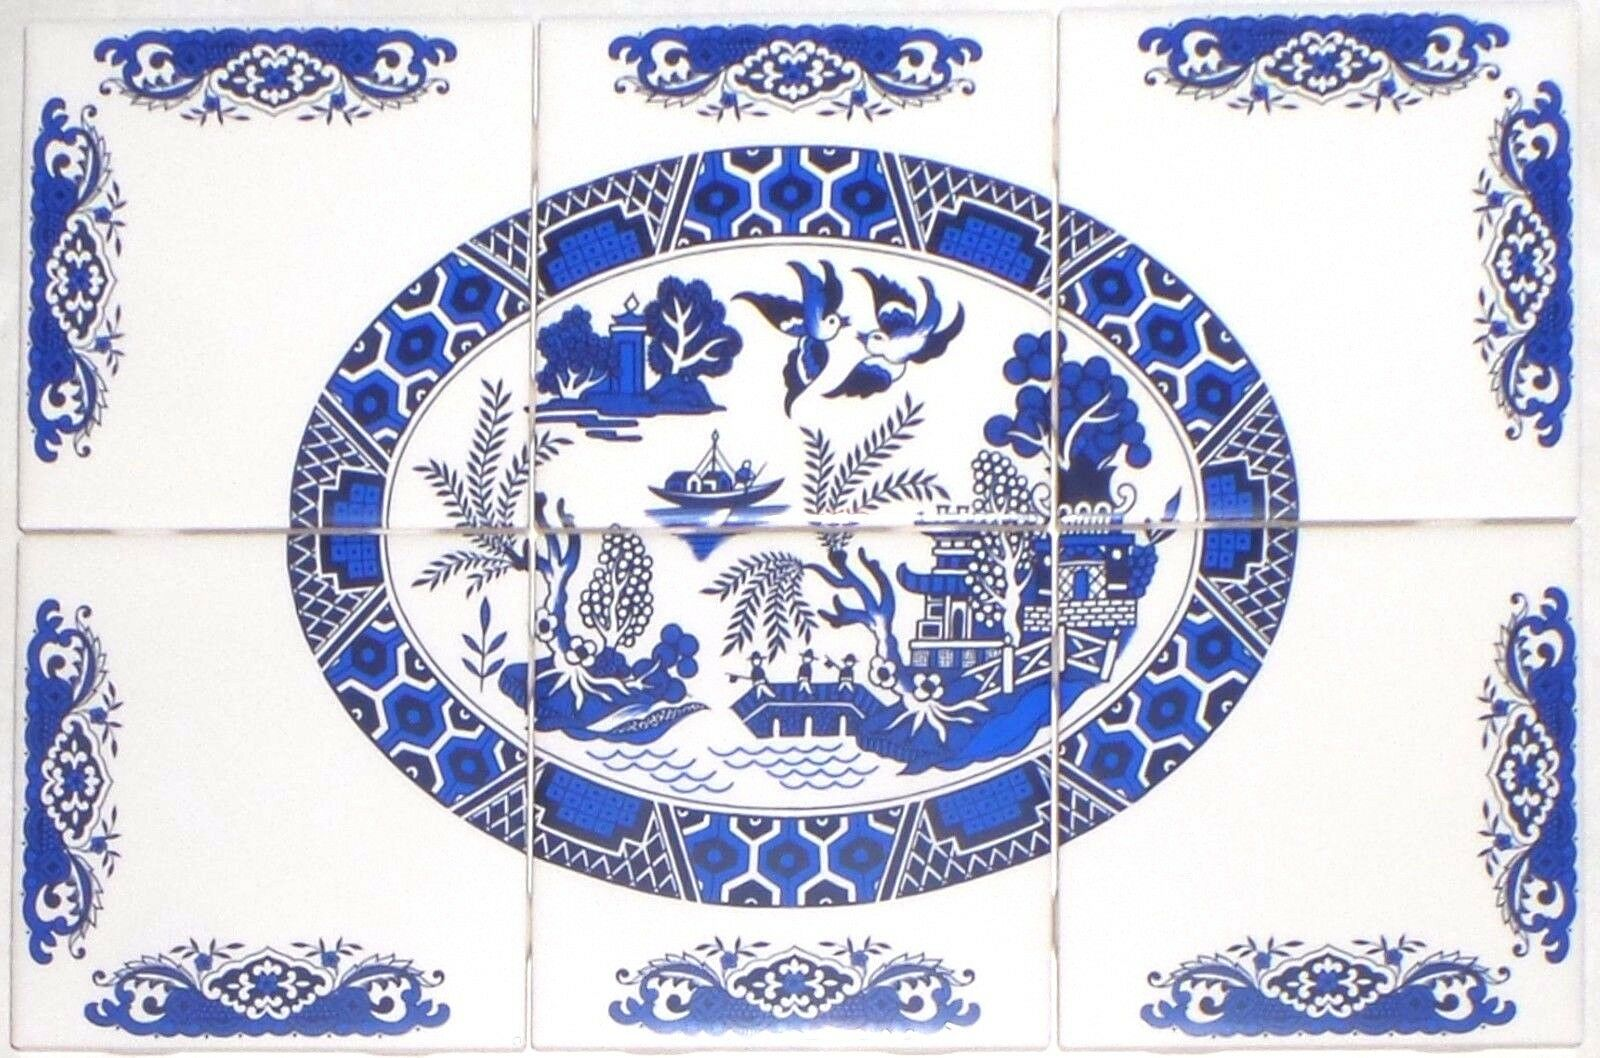 Blue Willow Ceramic Tile Mural 6pcs 425 X 425 Kiln Fired